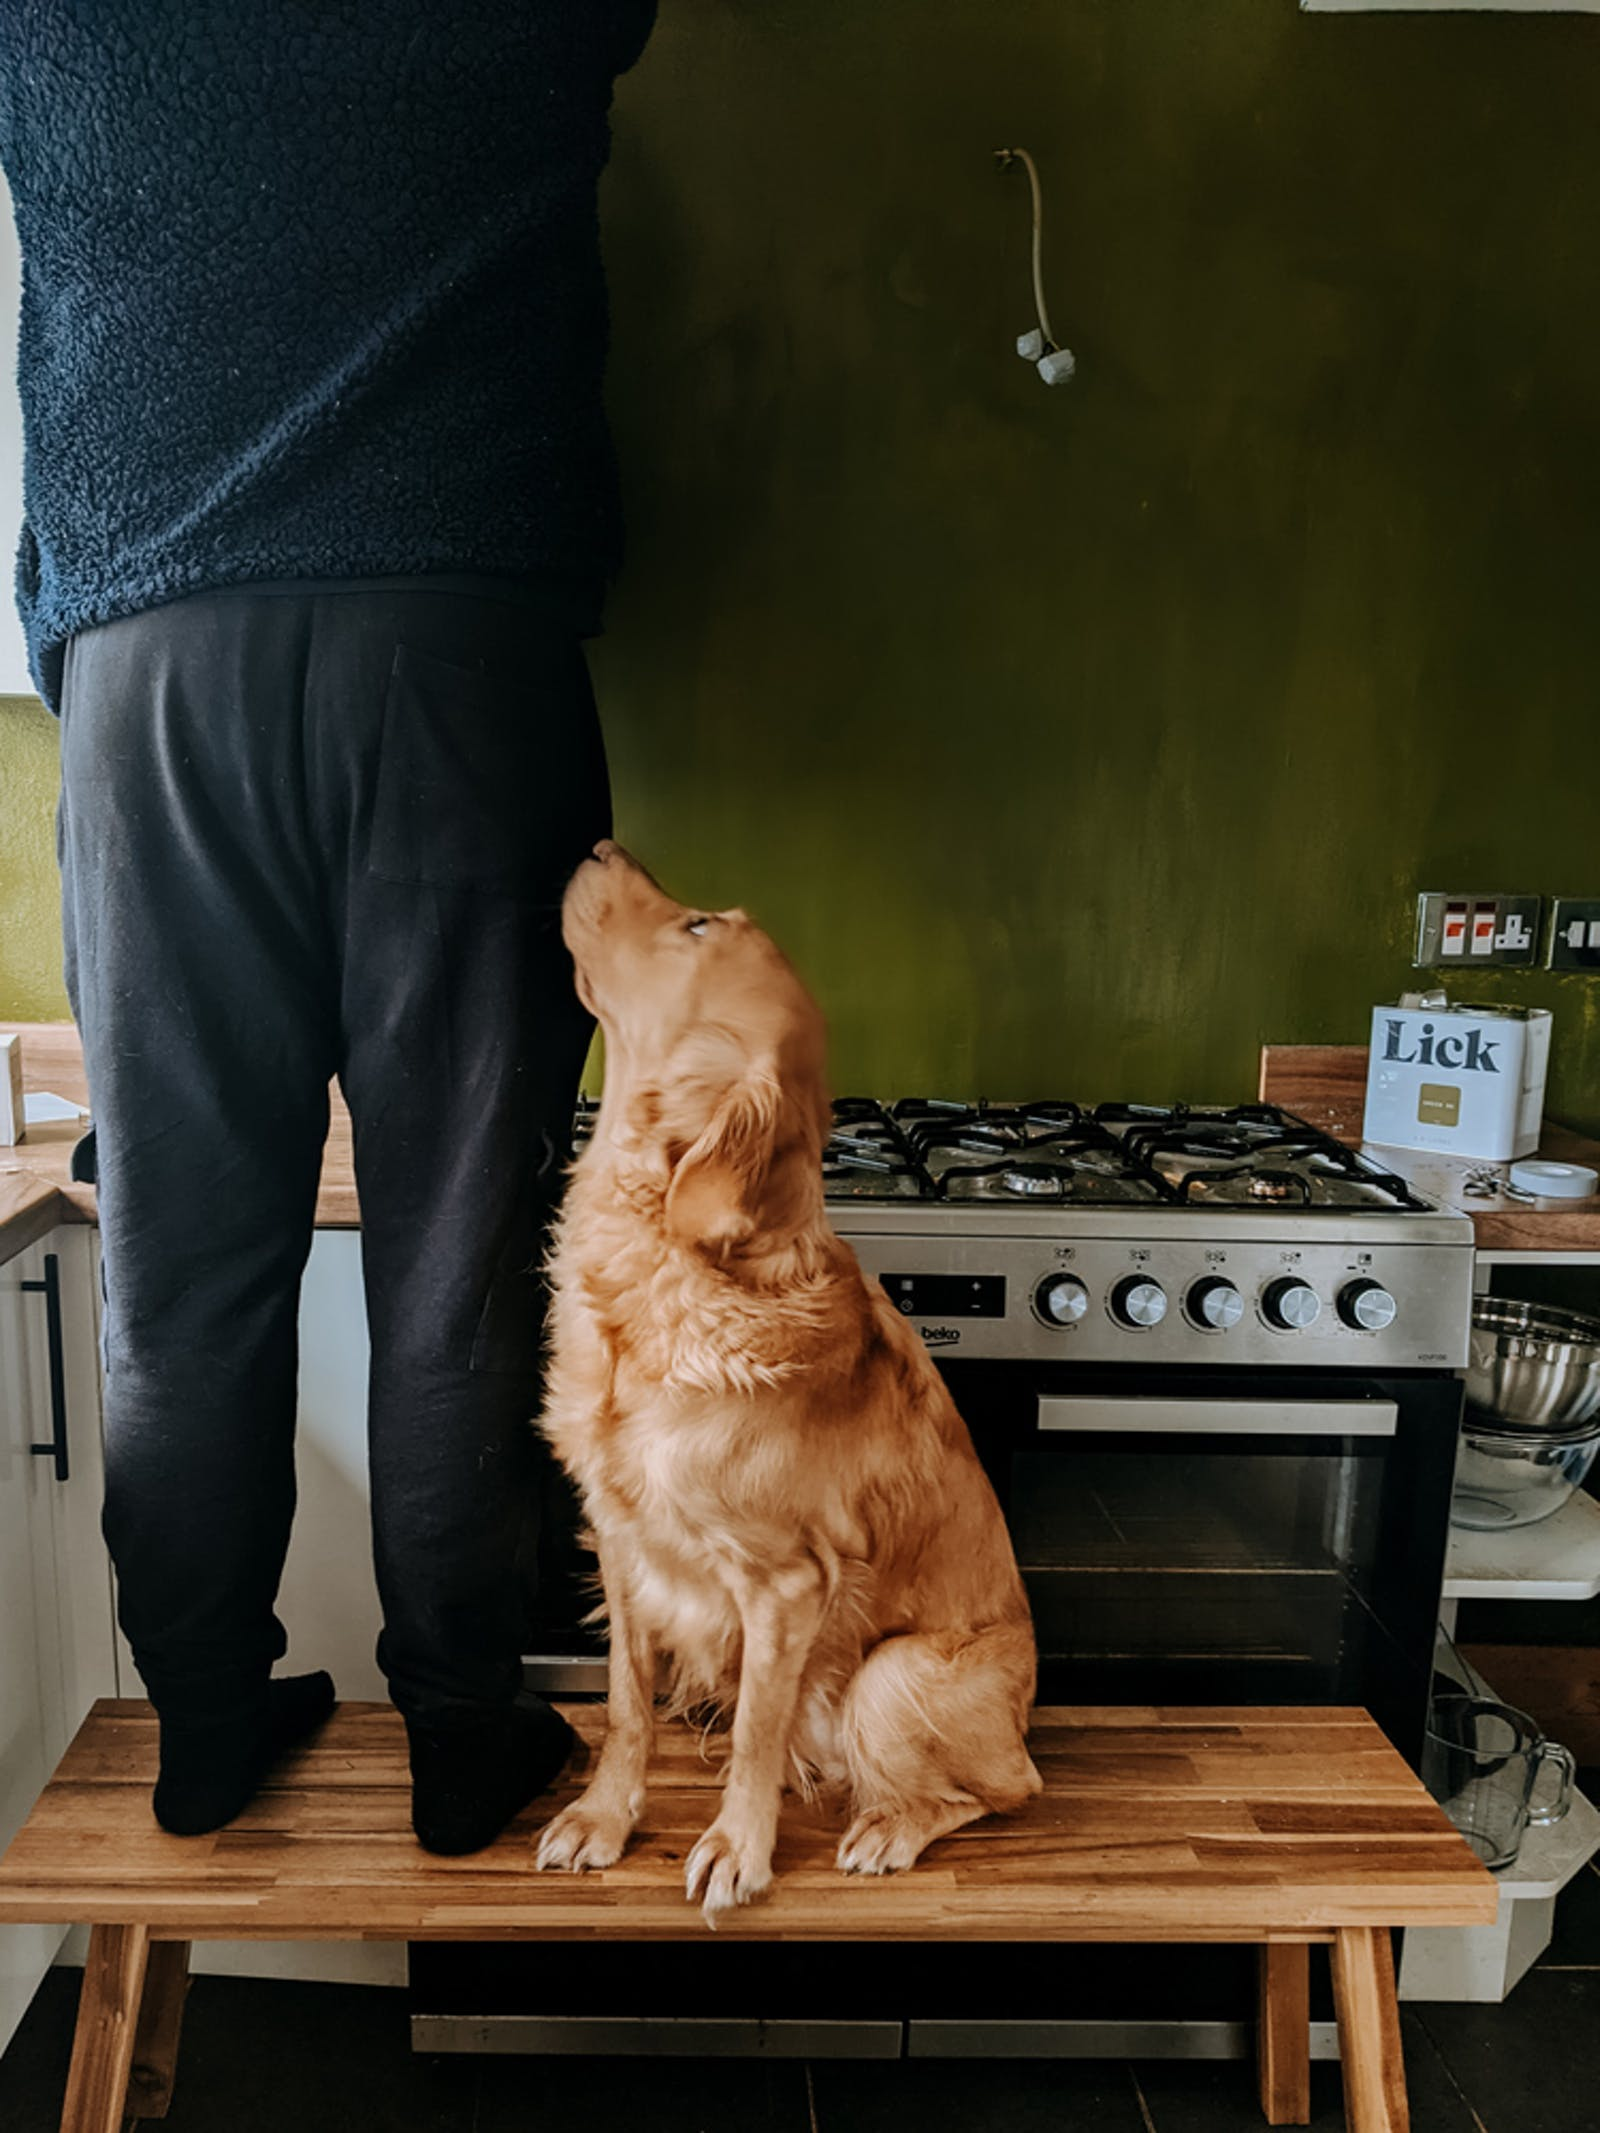 Dog looking up at owner who is panting their kitchen Green 05